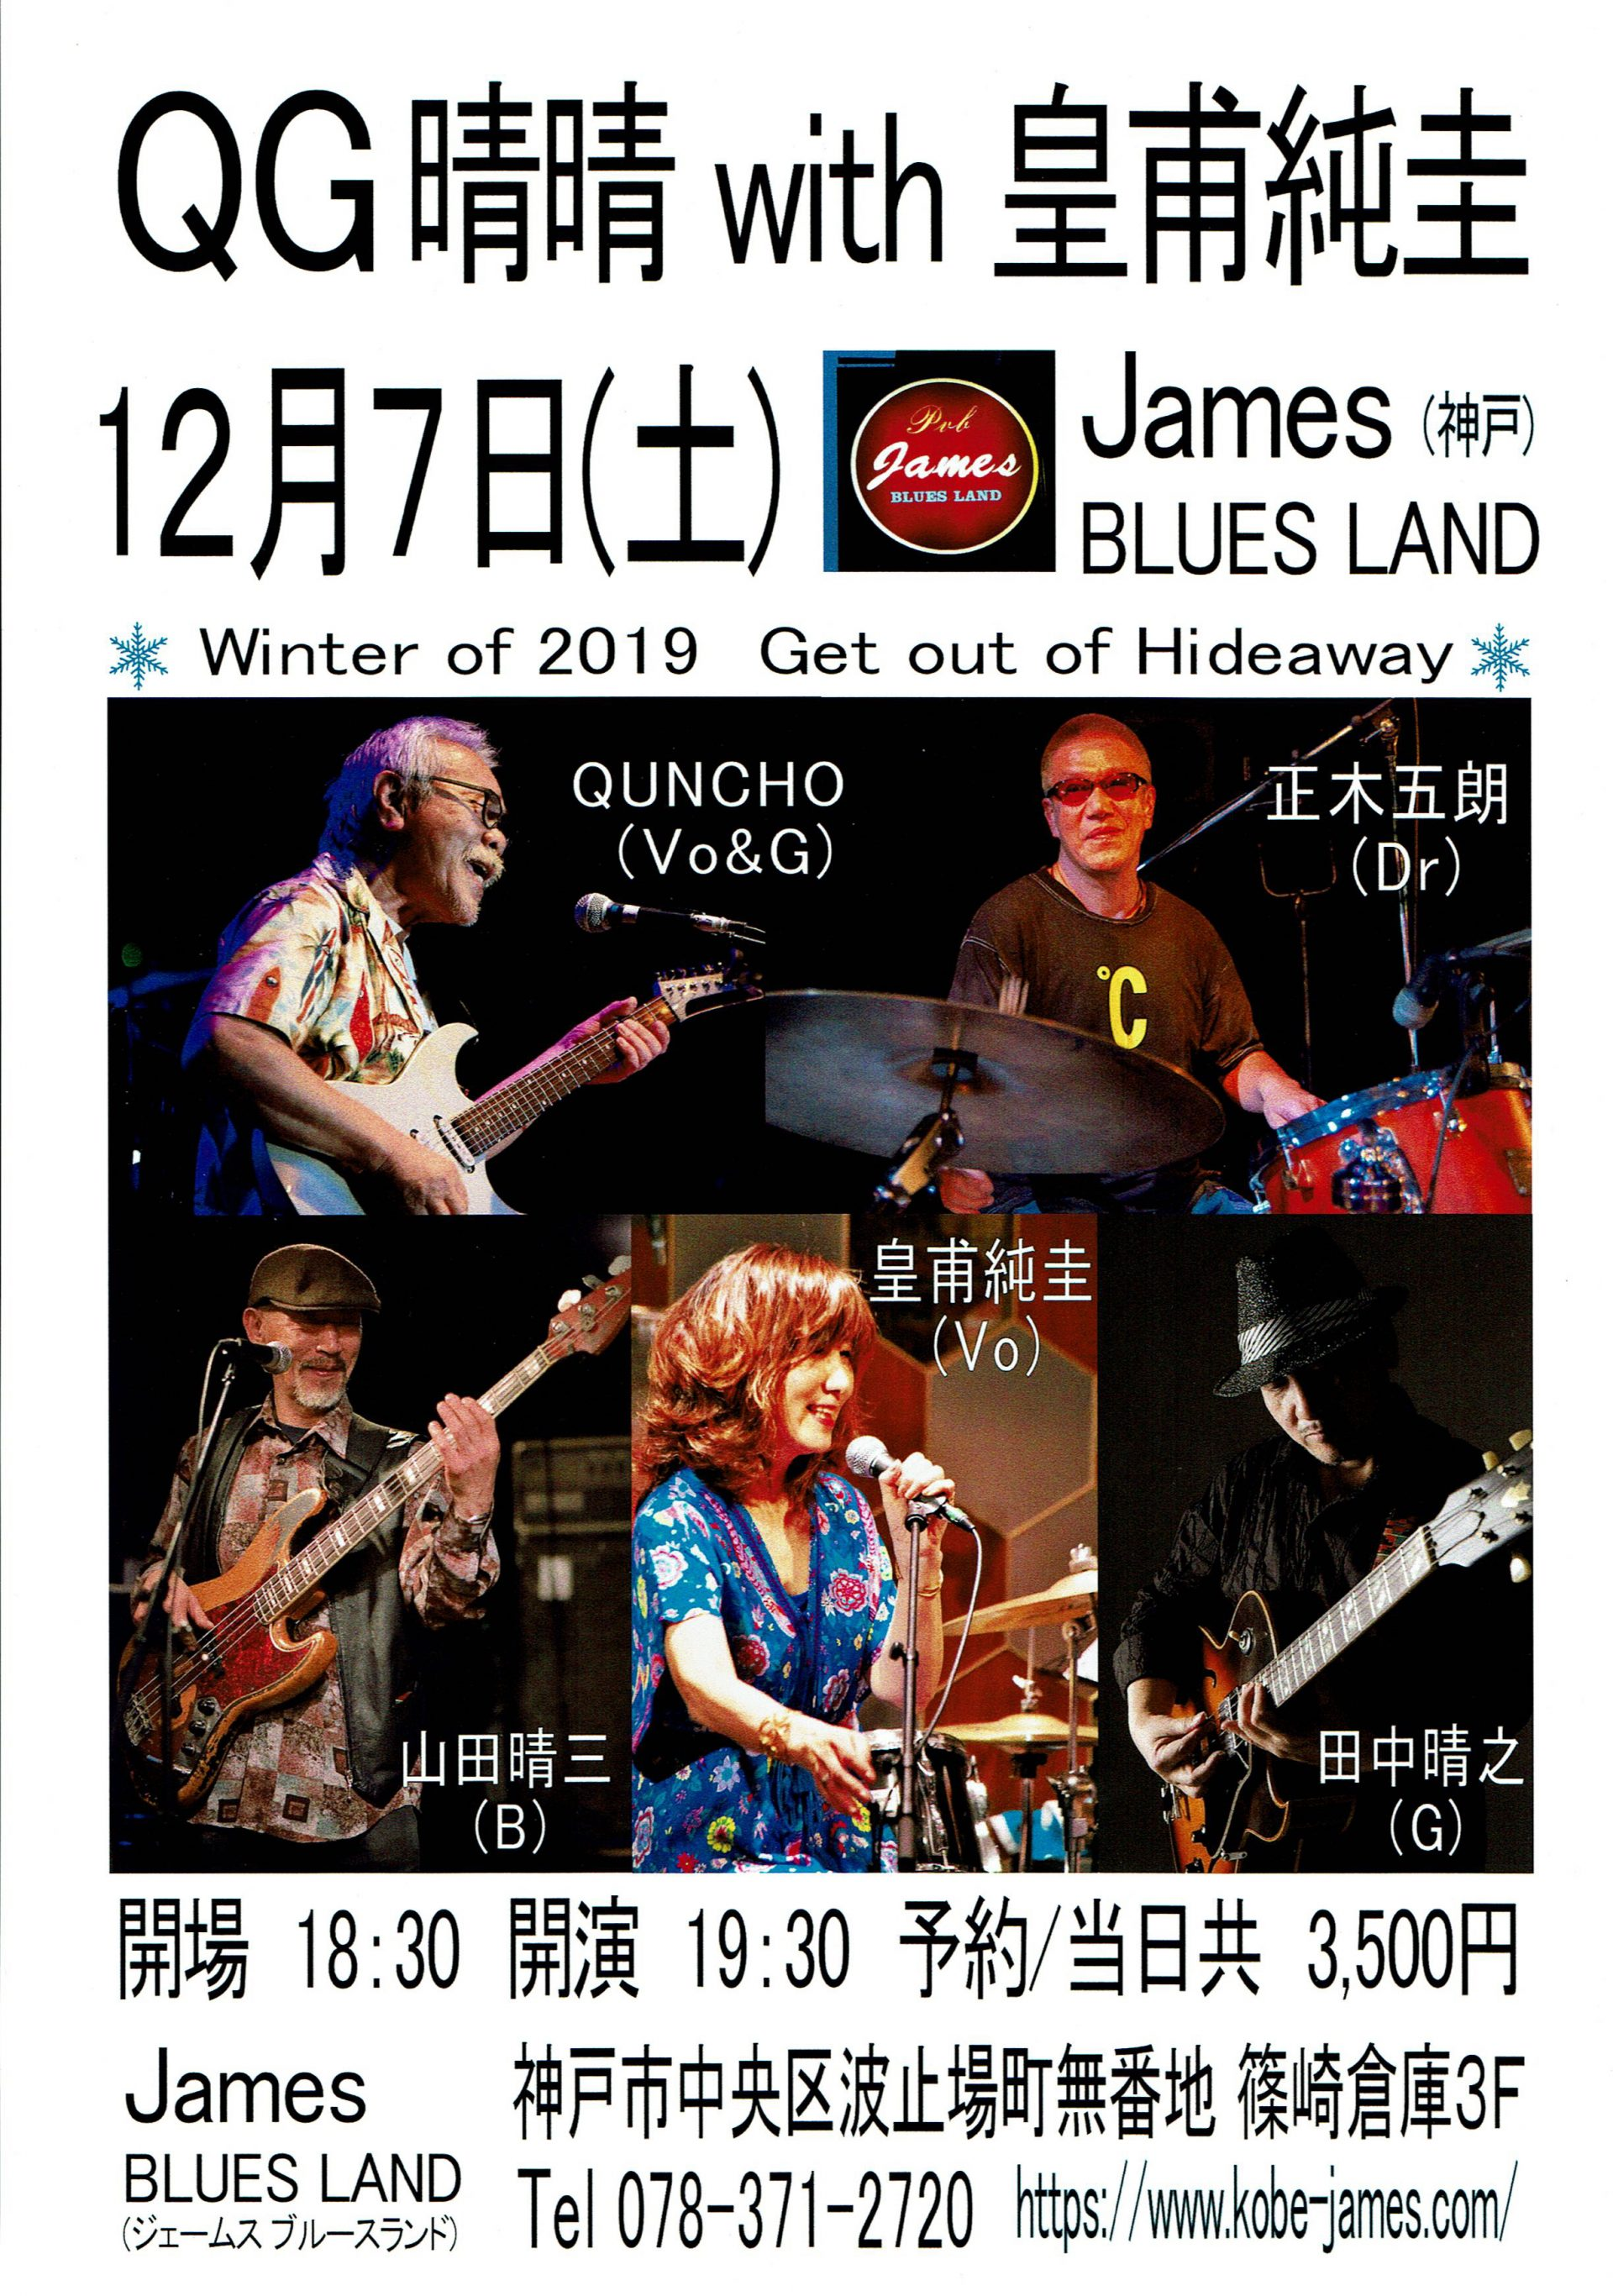 QG晴晴 with 皇甫純圭 Winter of 2019 Get out of Hide away